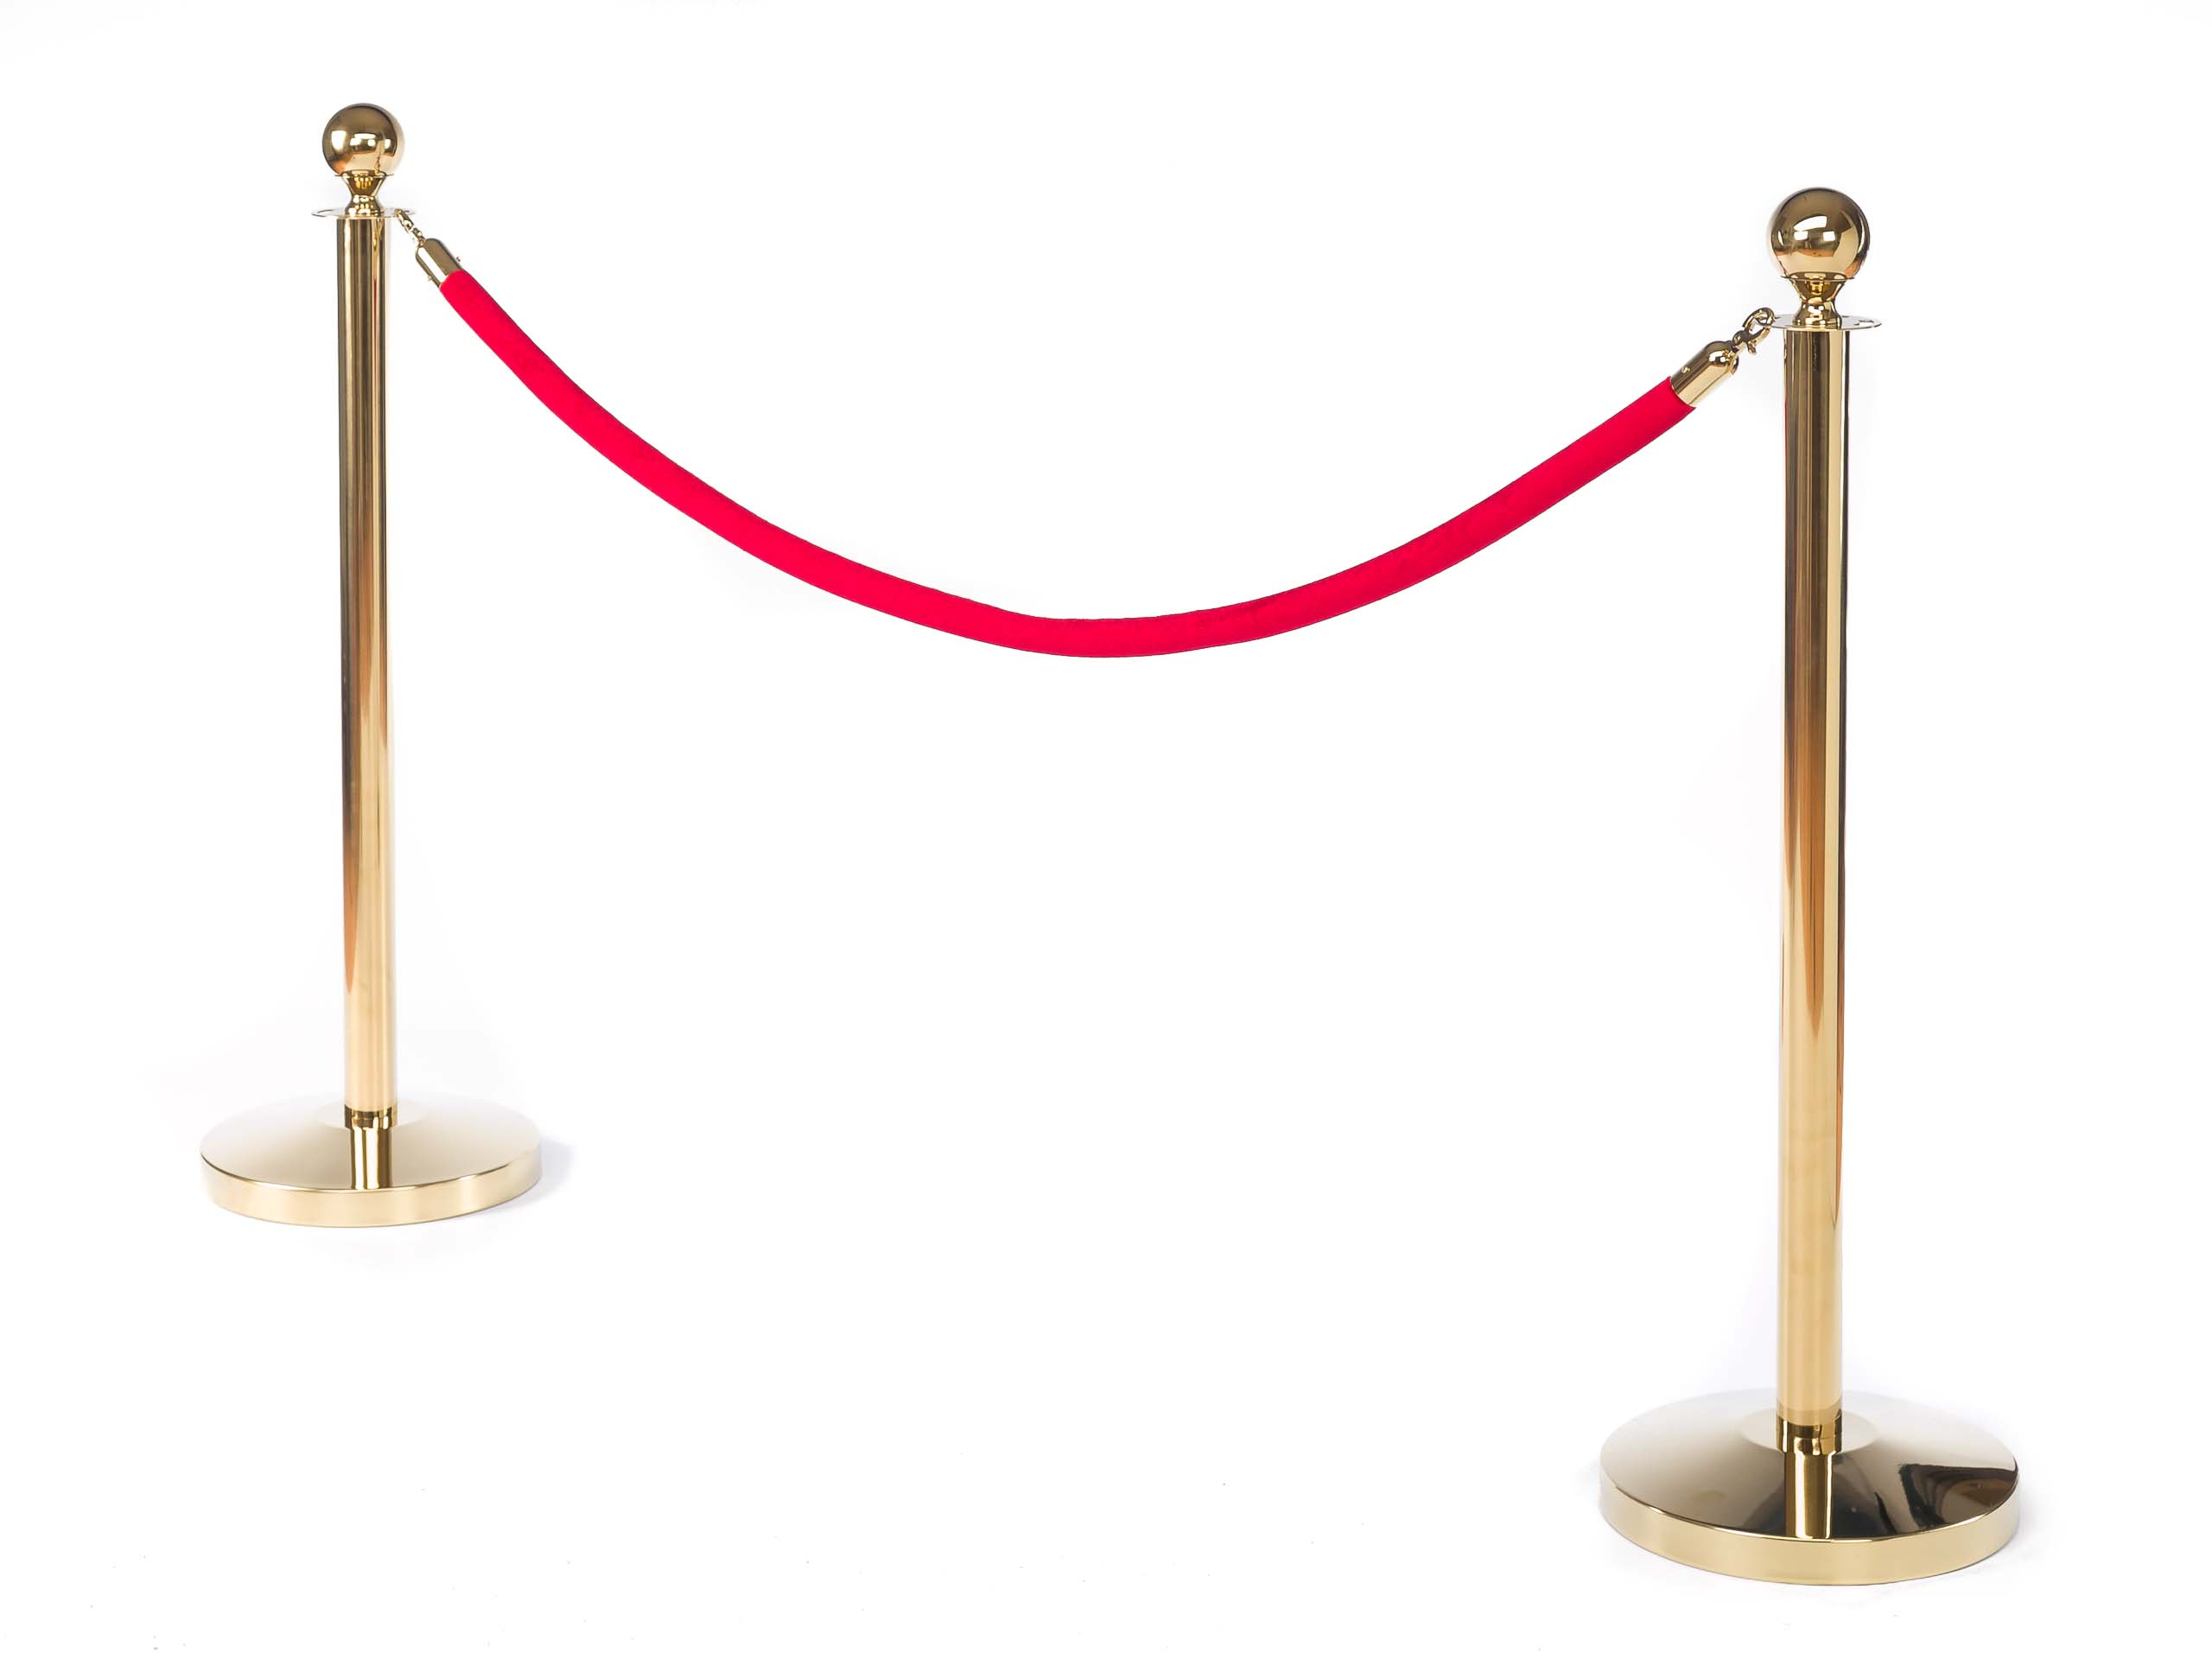 Roter Teppich Vip Teppich Elegant Barrier Vip Stanchion Set Of 2 Posts 1 Rope Golden